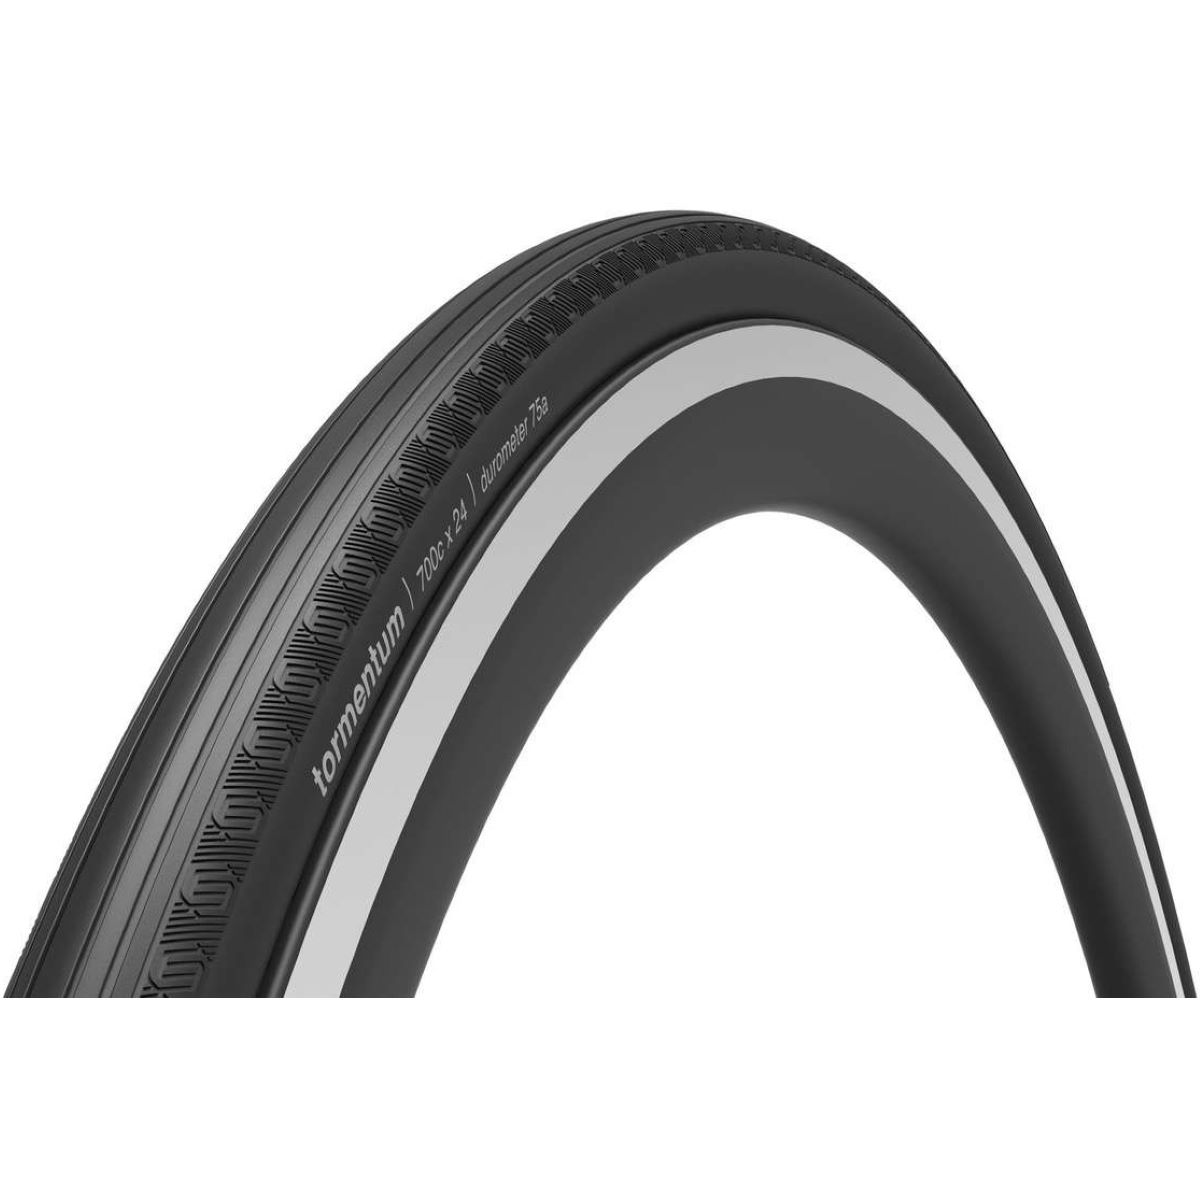 Ere Research Tormentum Clincher 60TPI Folding Road Tyre - Cubiertas